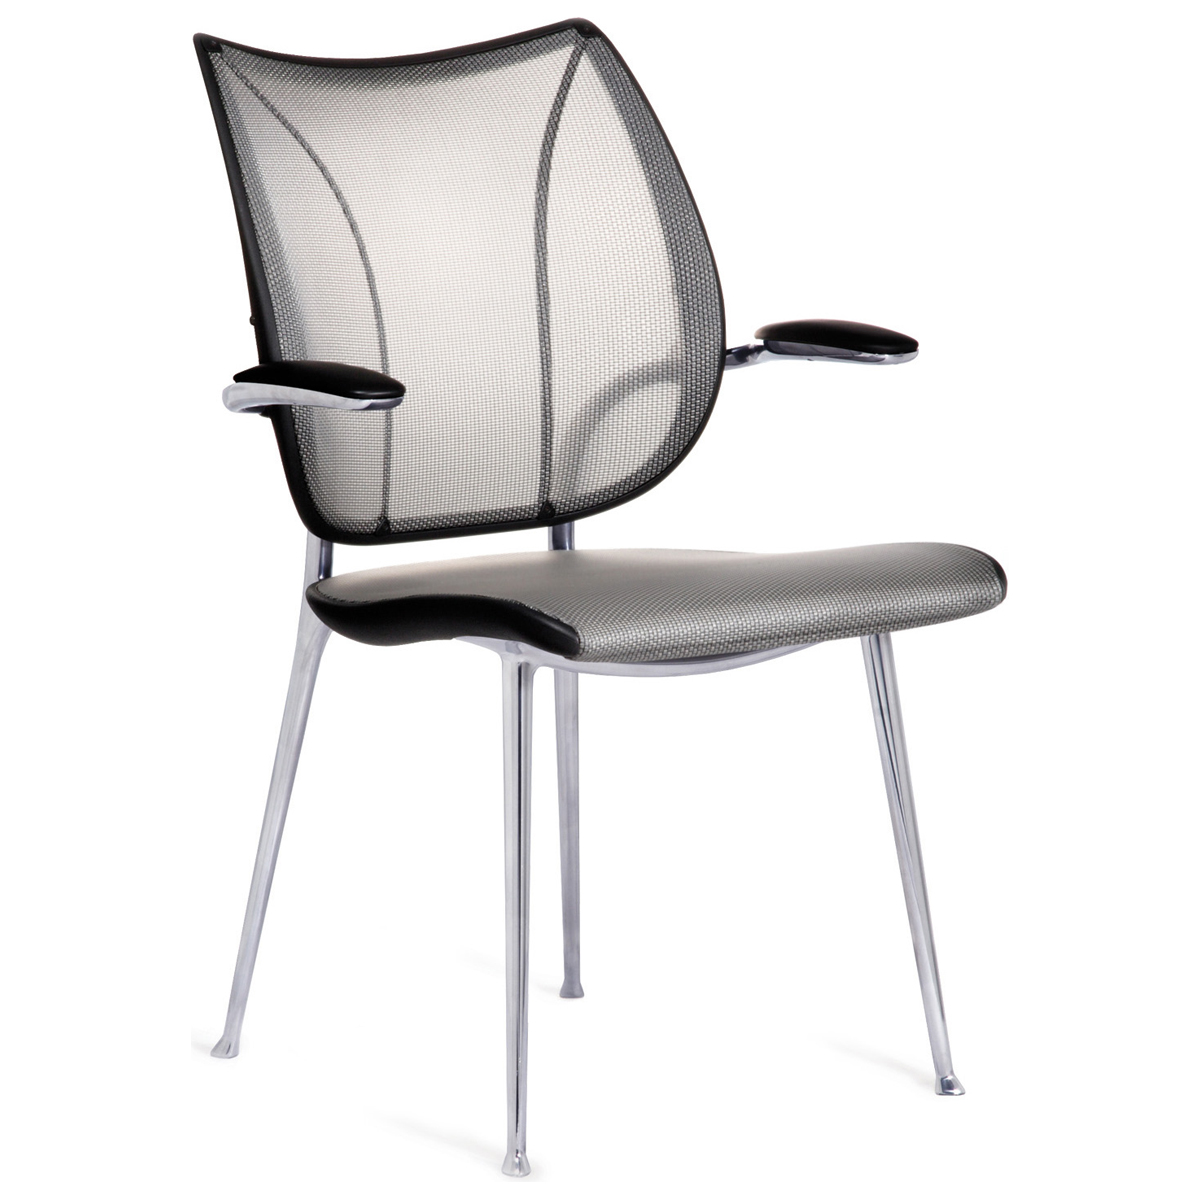 Humanscale Liberty Chair Humanscale Liberty Side Chair